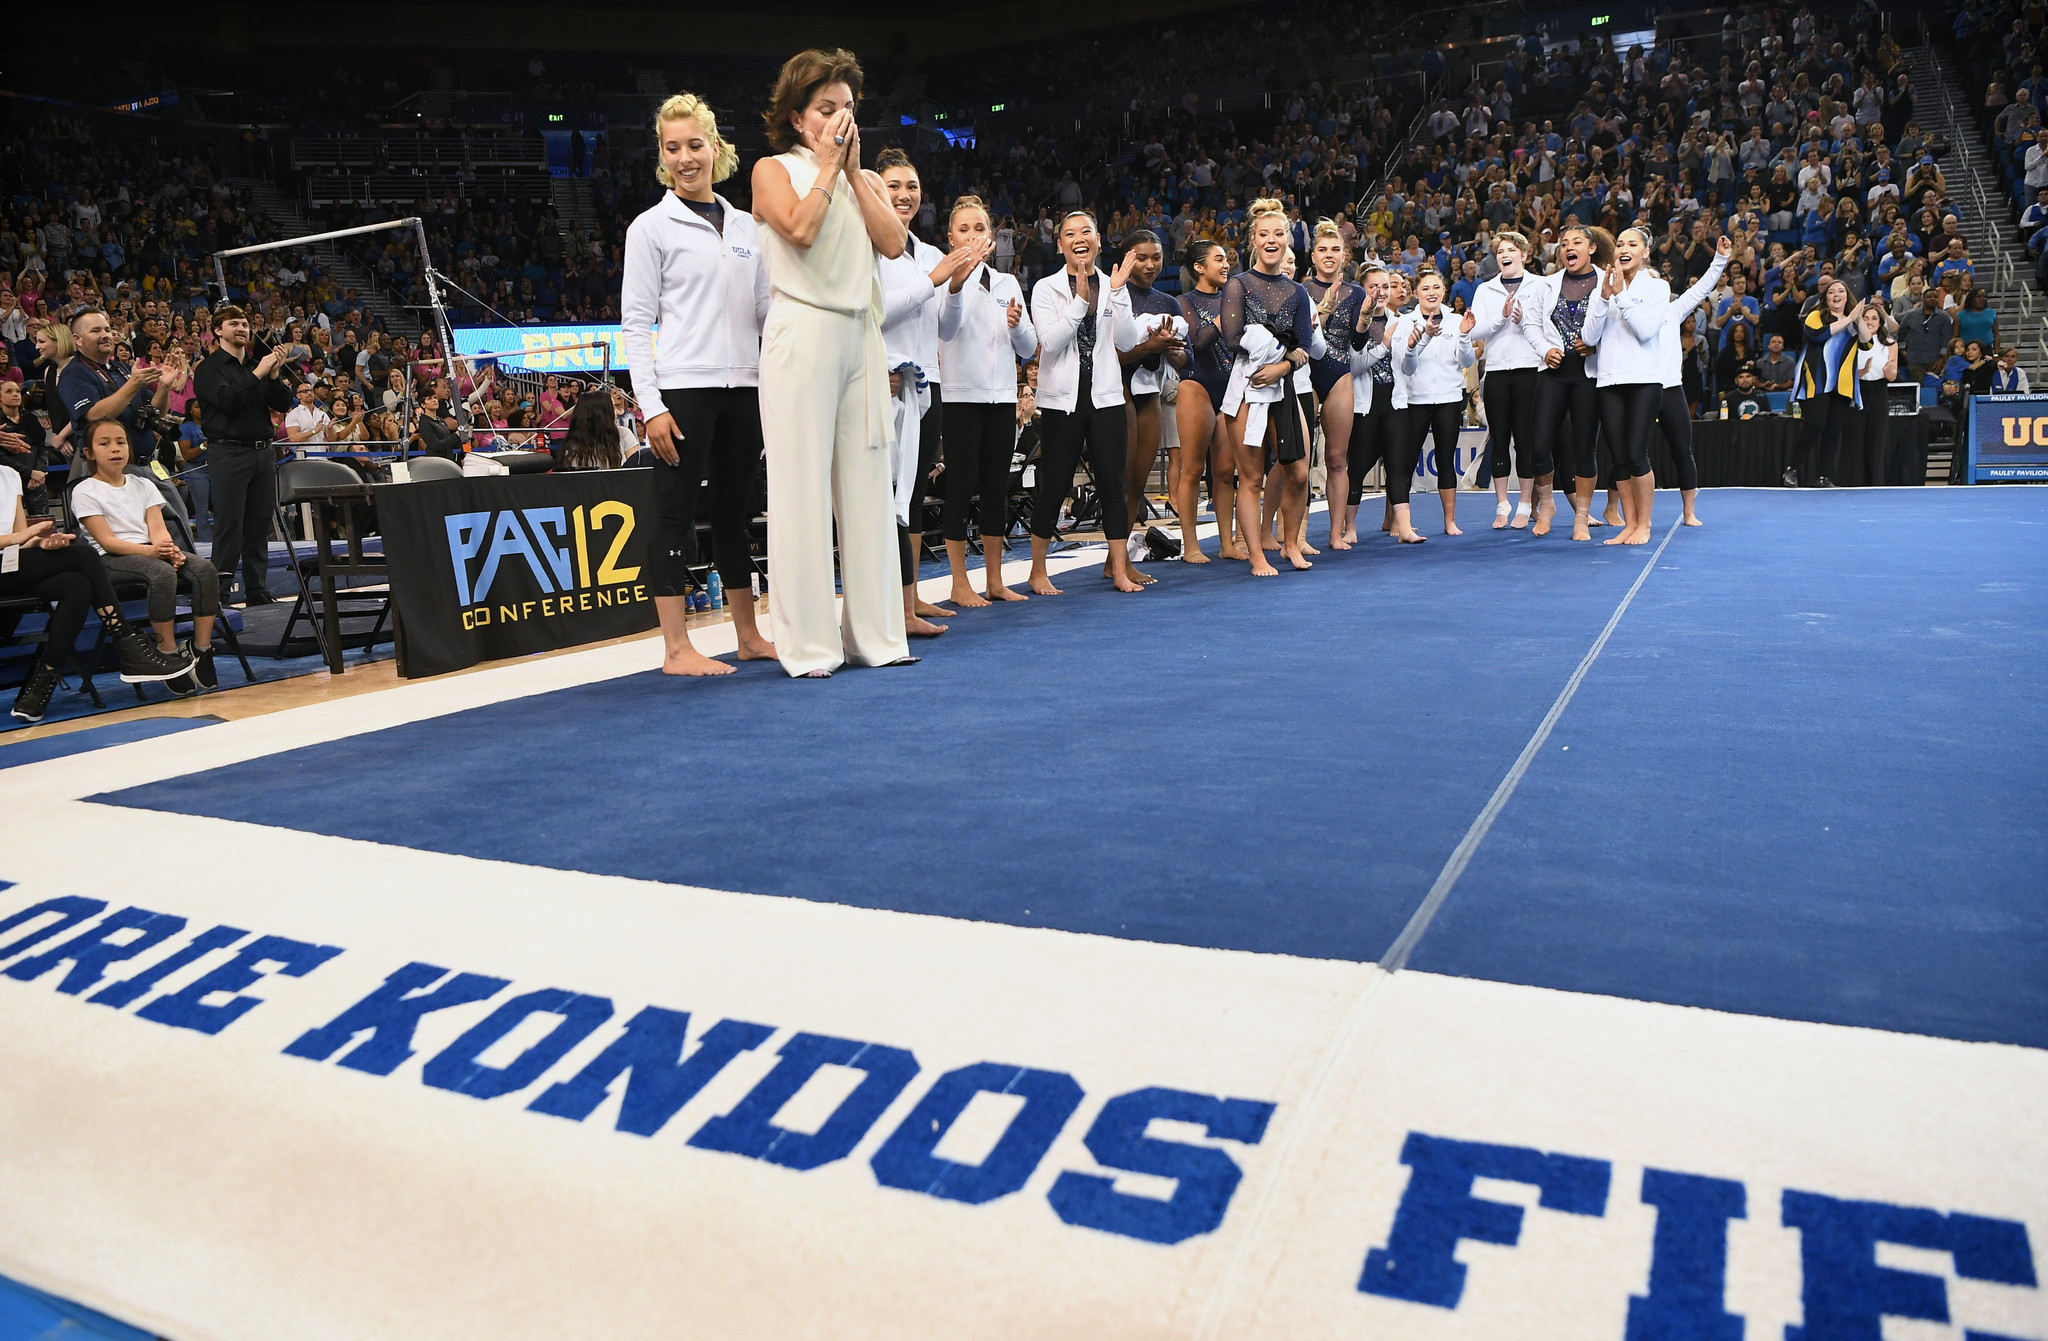 UCLA coach Valorie Kondos Field seems surprised at her named is unveiled on the floor during a dedication ceremony at Pauley Pavilion.